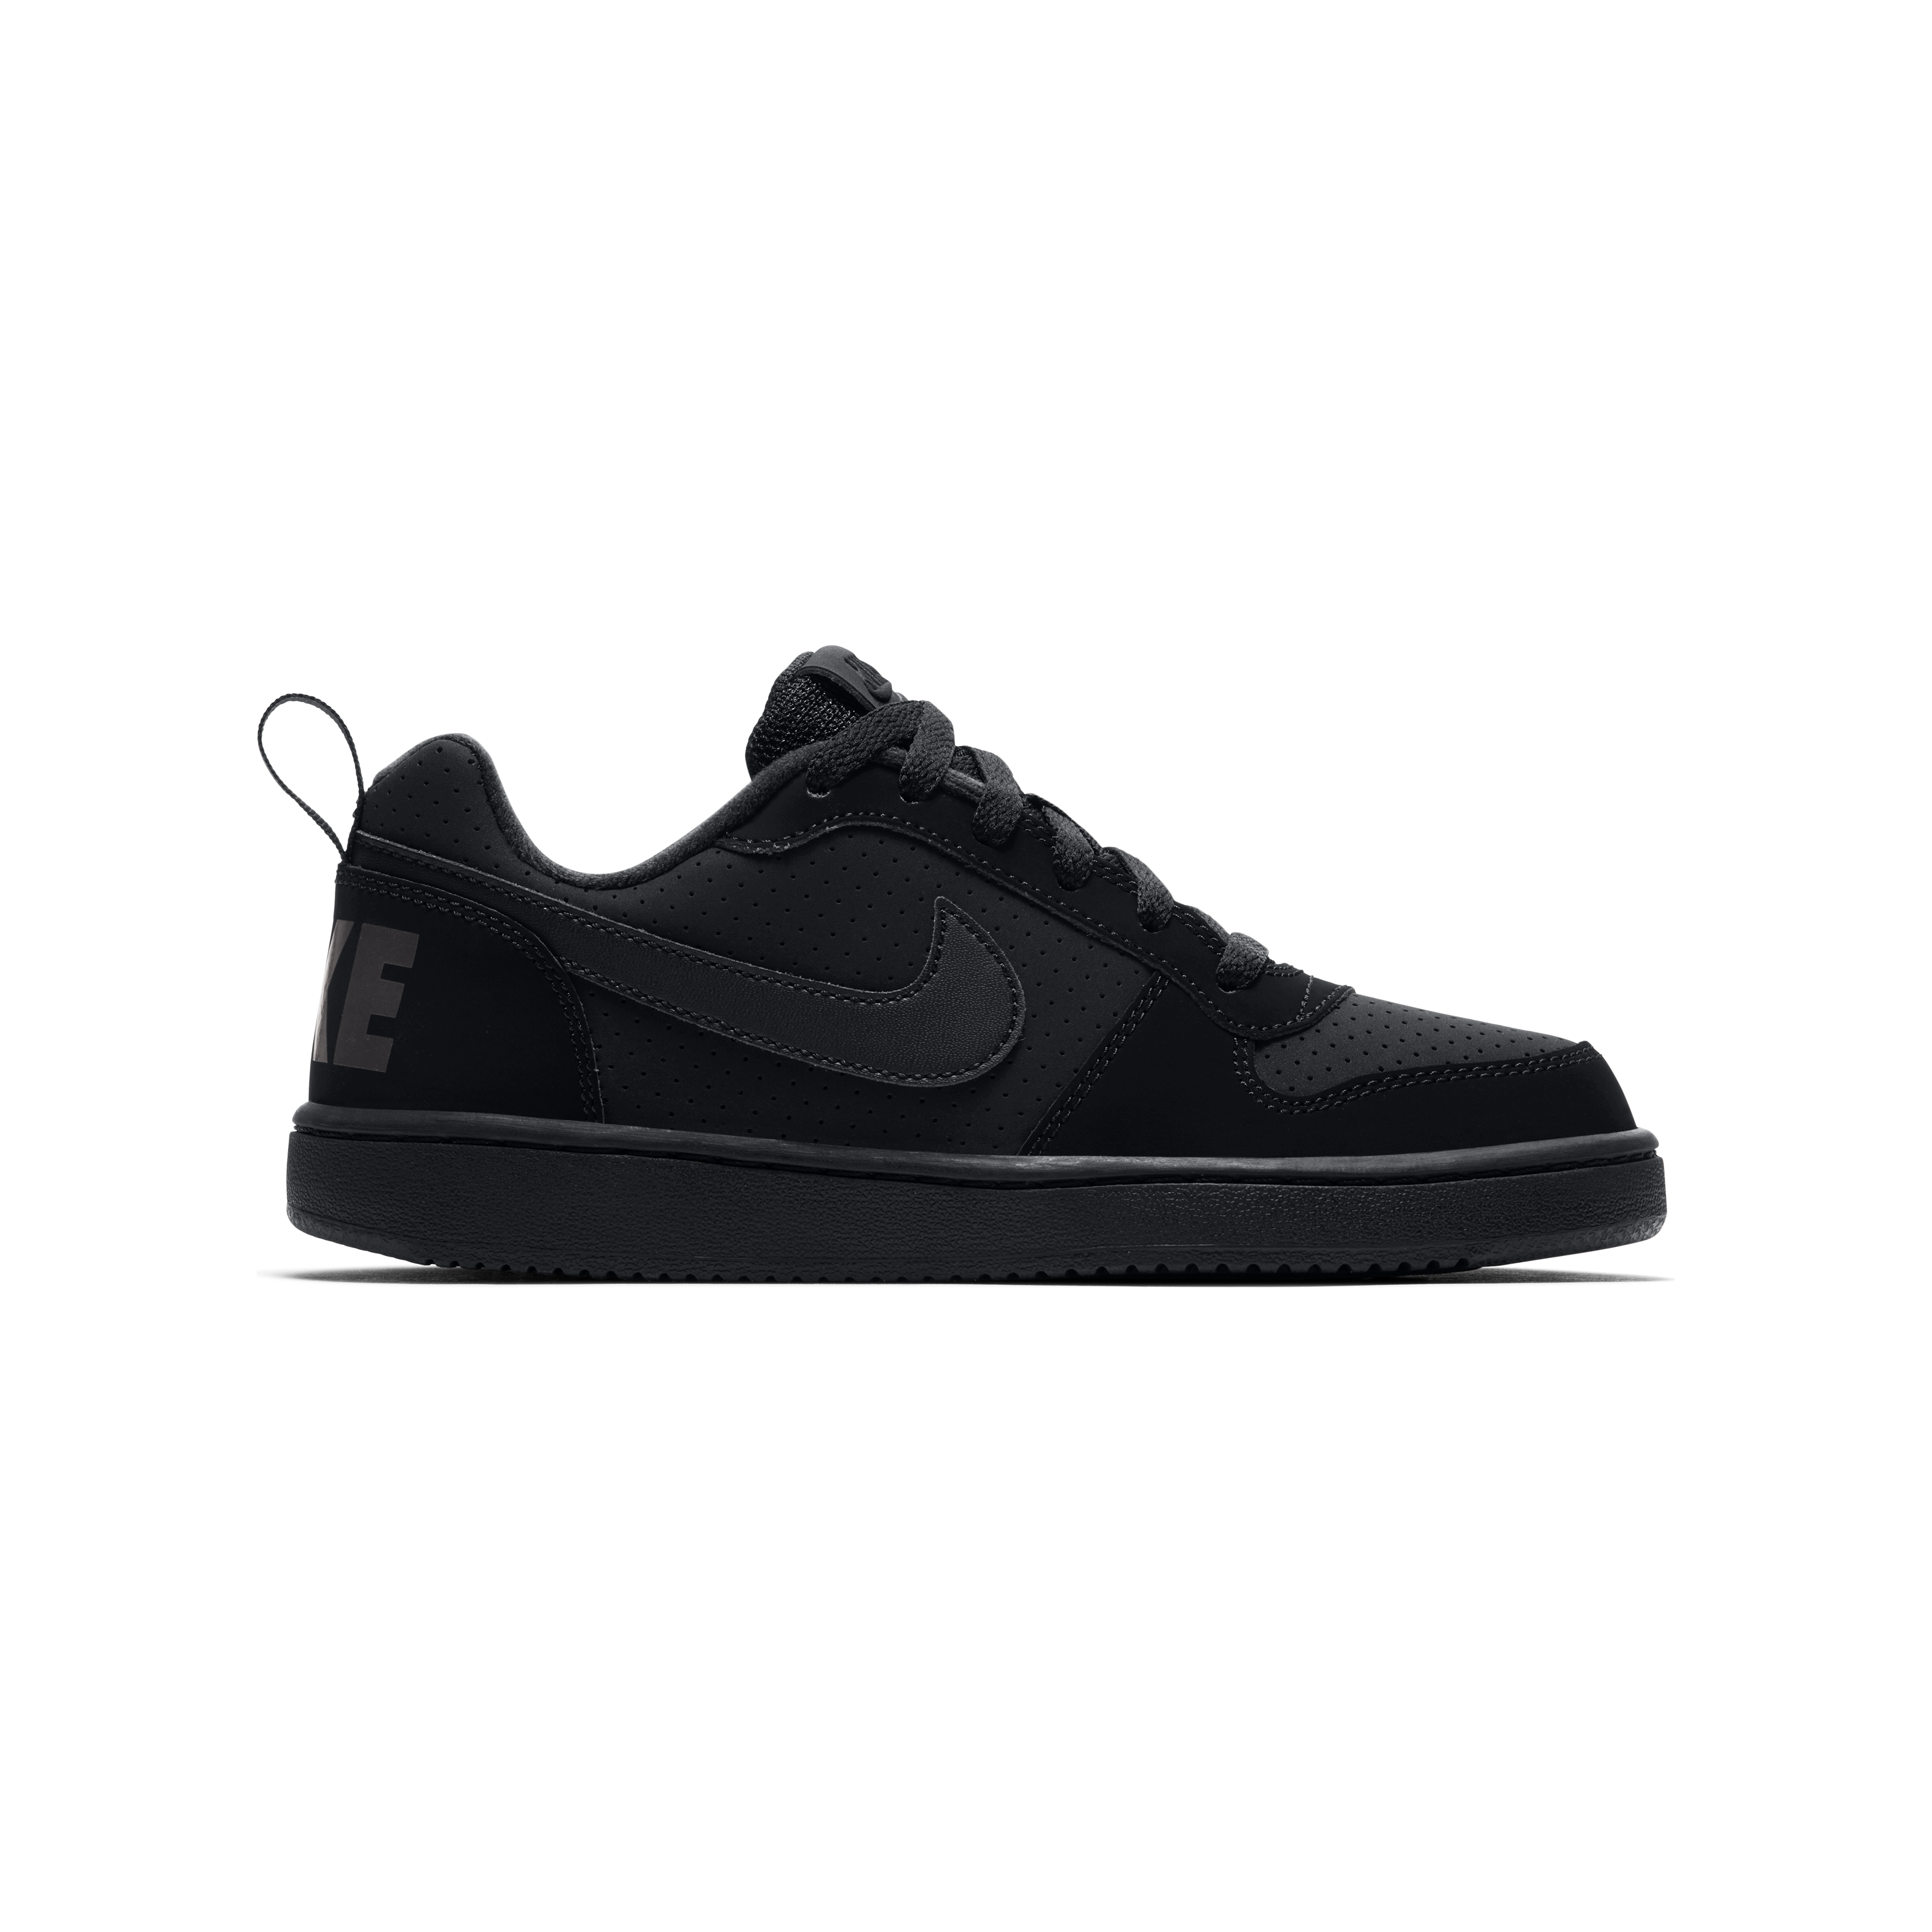 Bebé cordura Impuestos  NIKE COURT BOROUGH LOW GS ( GRADE SCHOOL ) JUNIOR - Poobie Naidoos